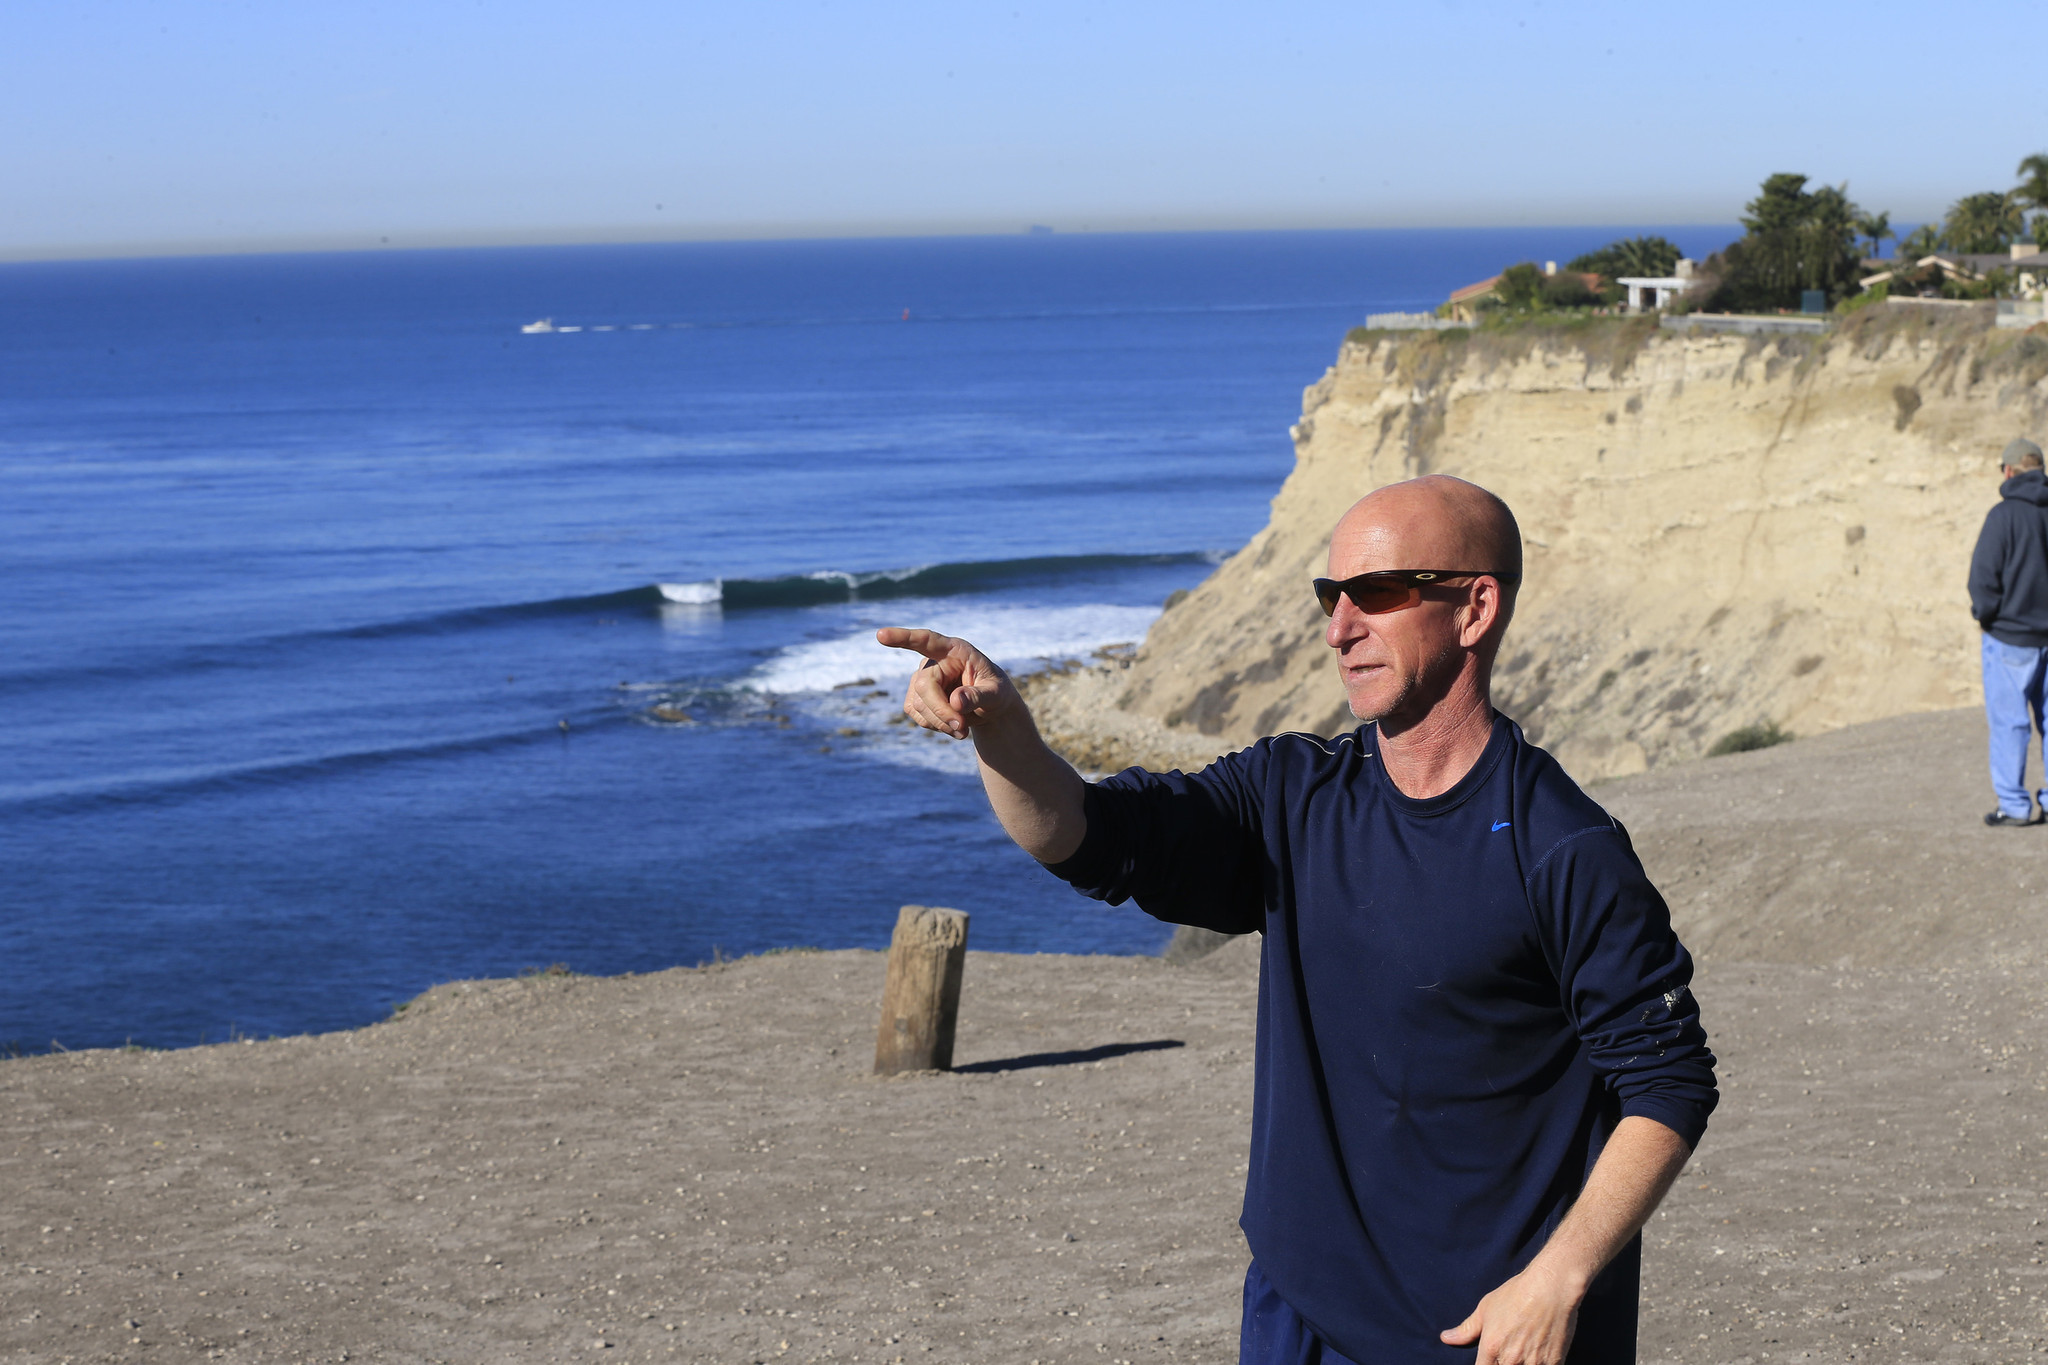 How To File A Class Action Lawsuit >> Lunada Bay surfers targeted by class-action lawsuit - LA Times